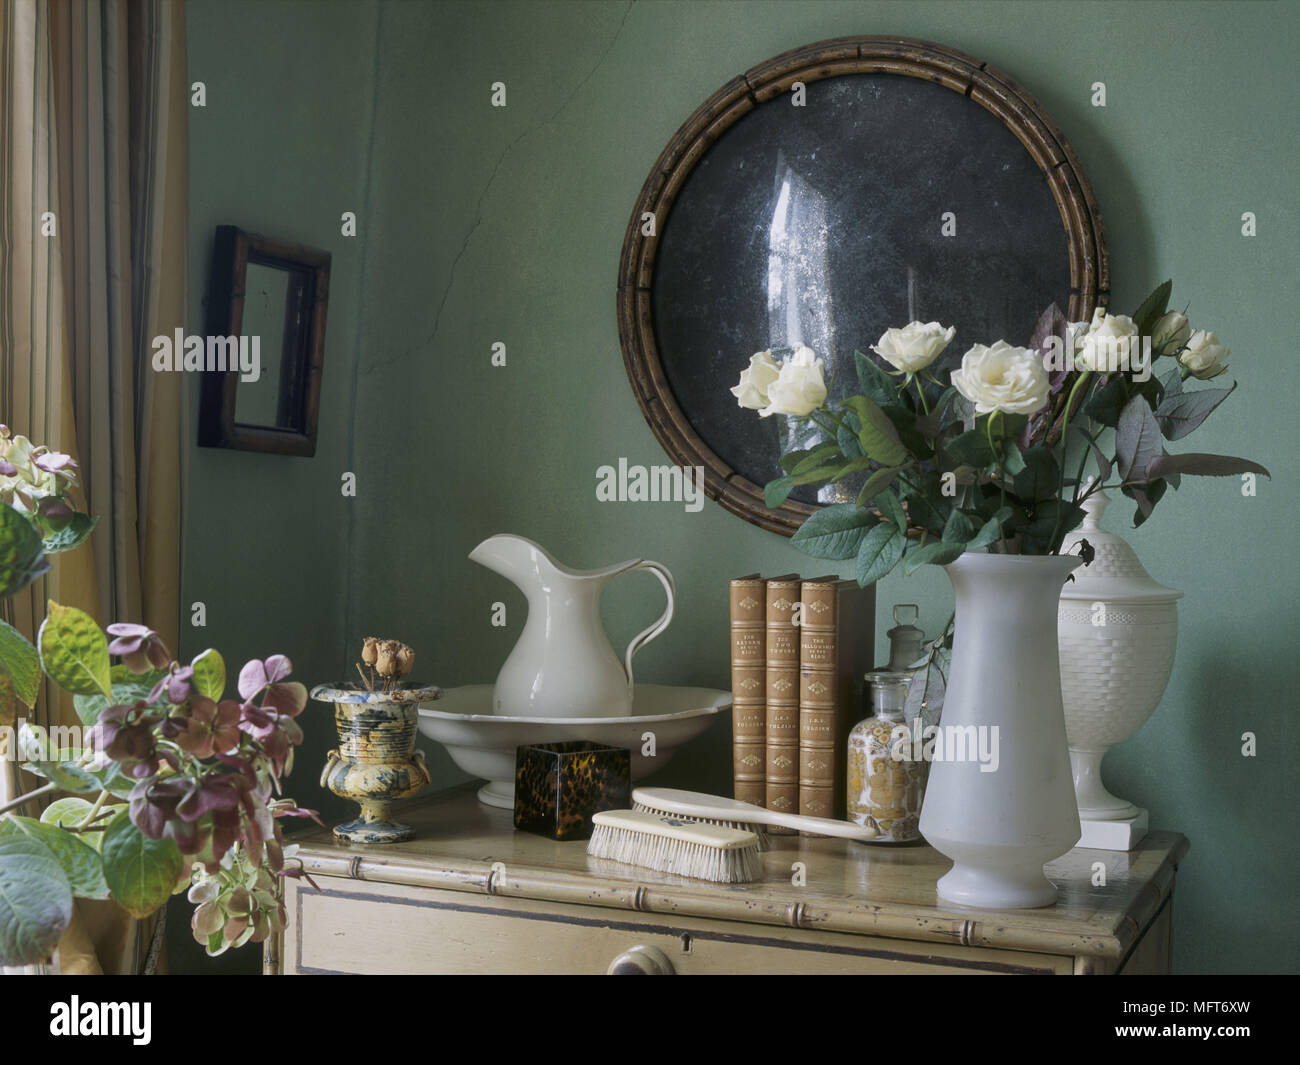 A detail of a traditional green bedroom a bamboo cane chest of drawers with wash basin and ewer Stock Photo